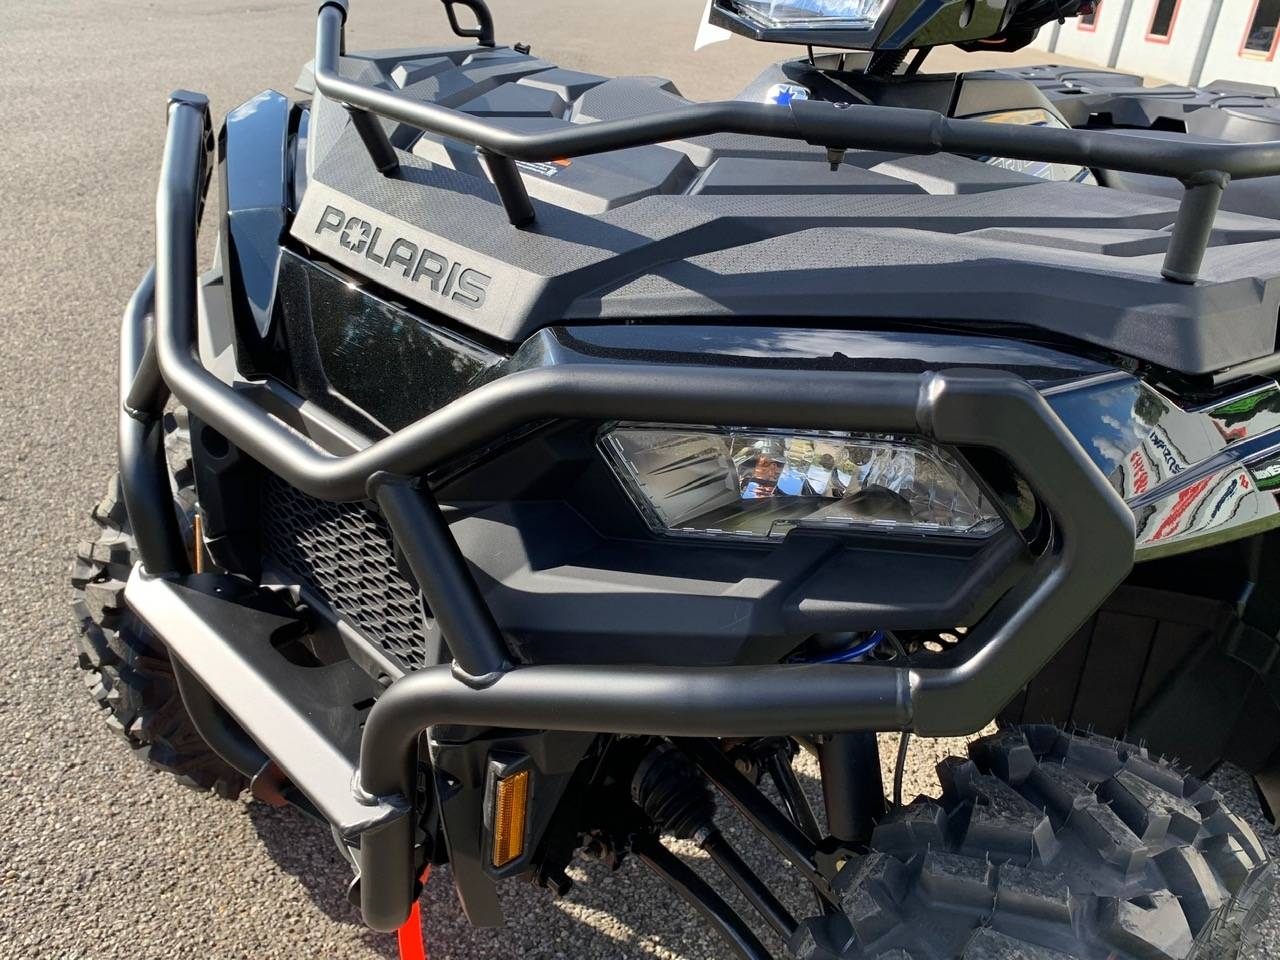 2021 Polaris Sportsman 570 Trail in Brilliant, Ohio - Photo 9